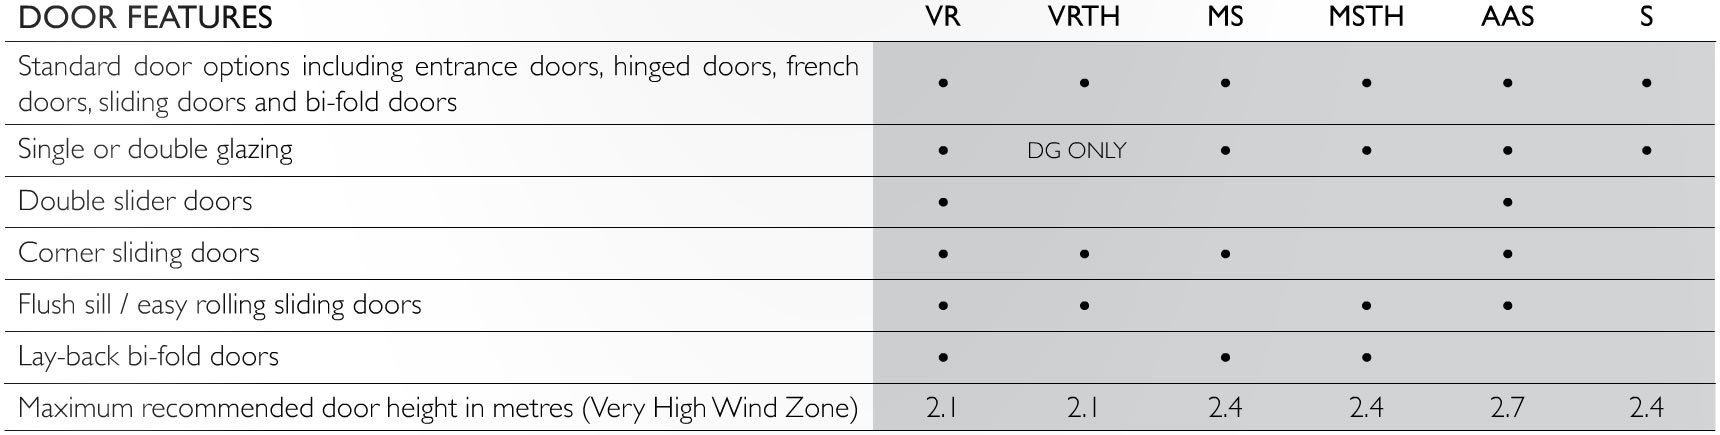 Comparison Of Vantage Range At Envision Aluminium NZ - Door Features